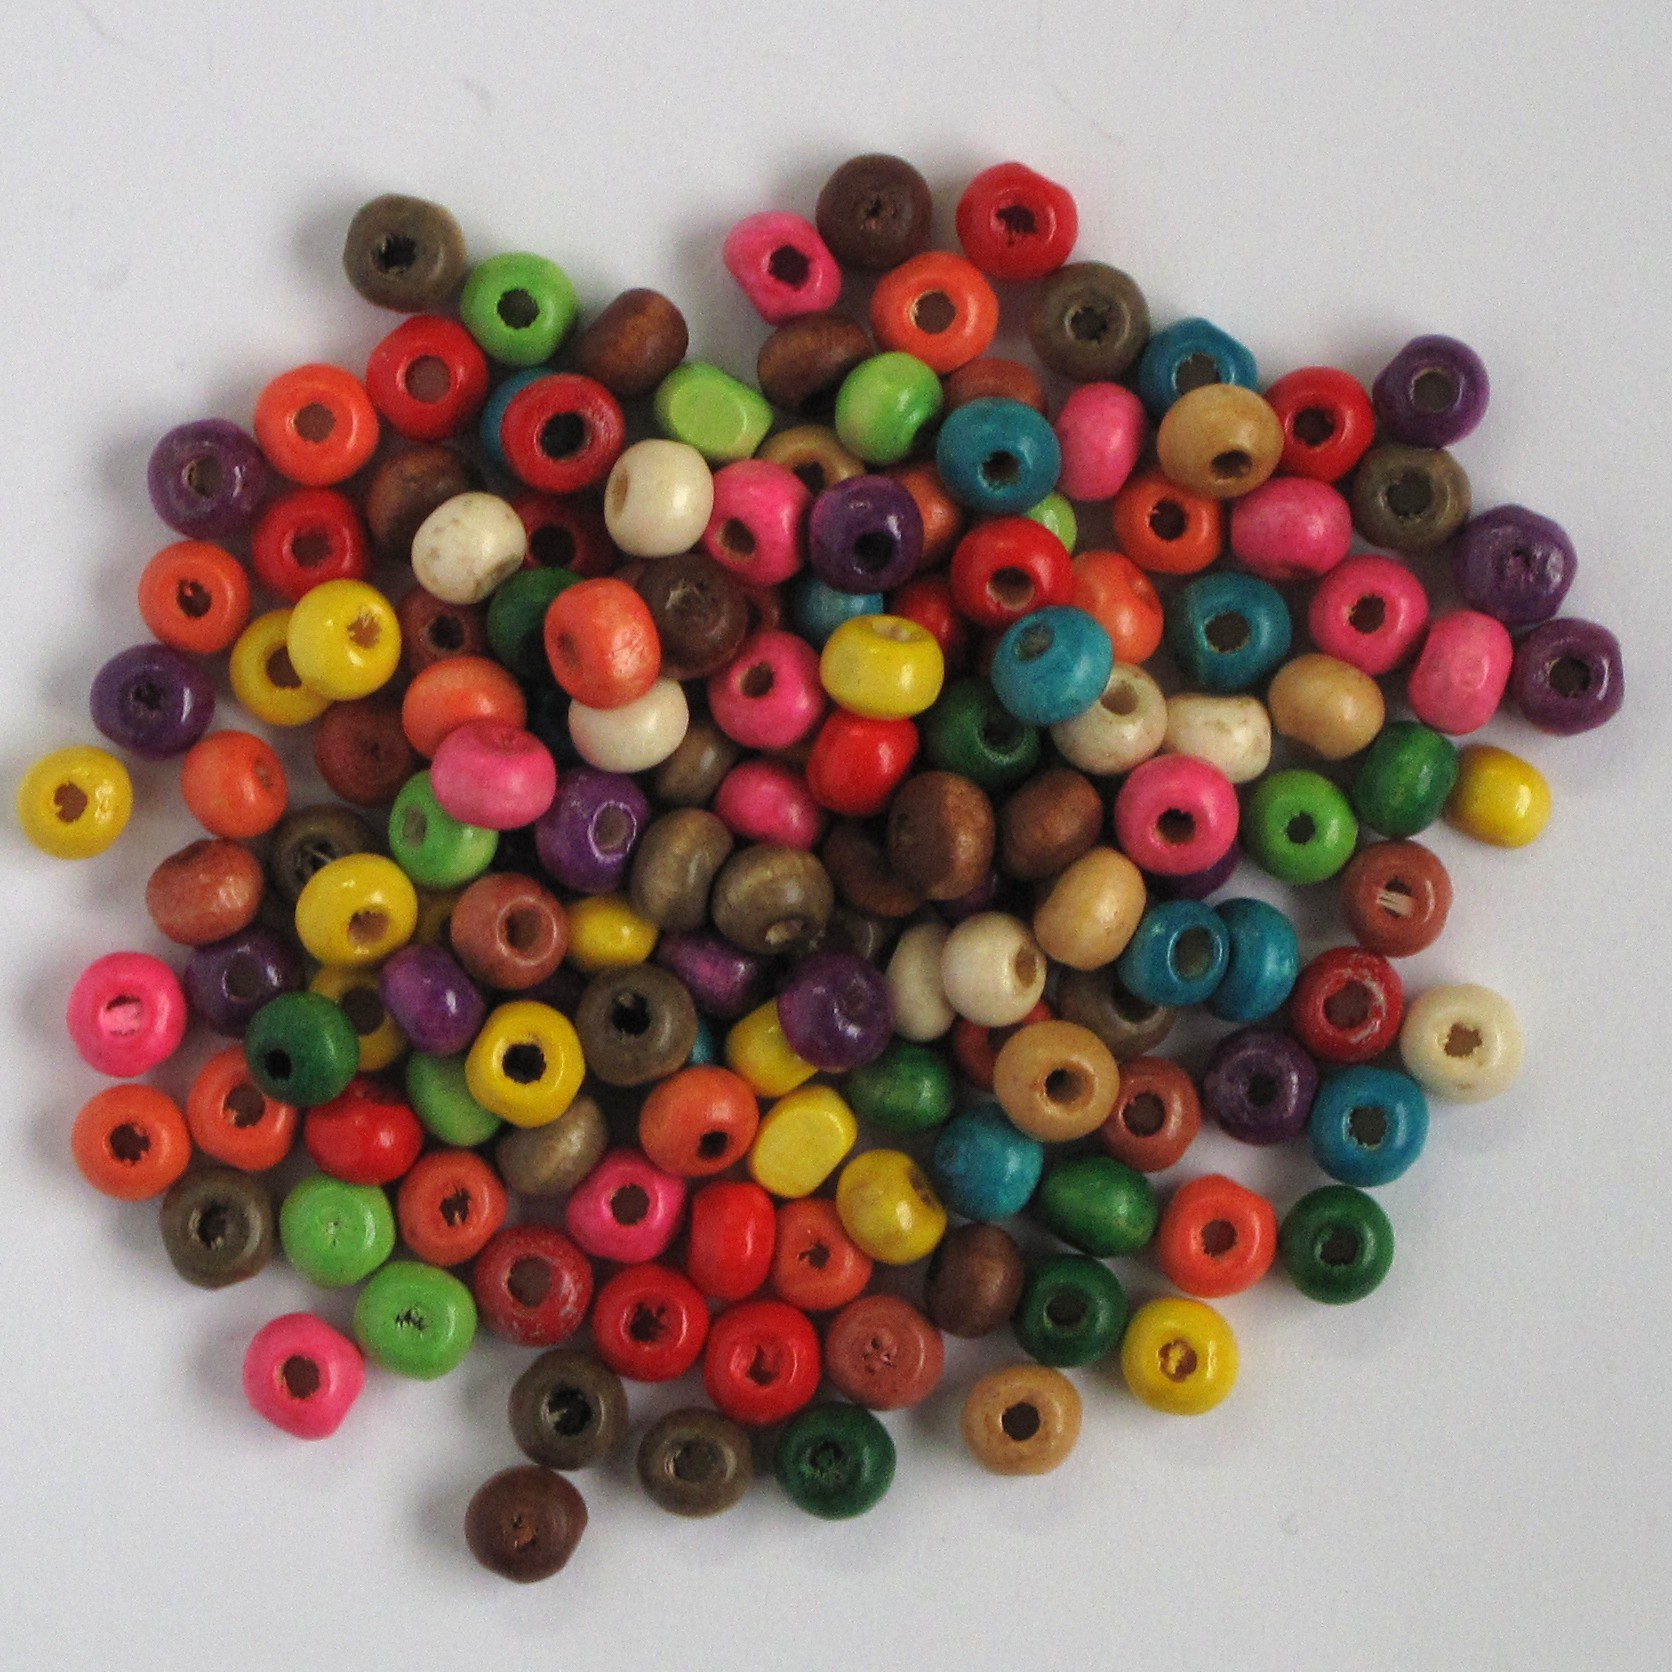 Small Sized Wooden Beads Mixed Colours